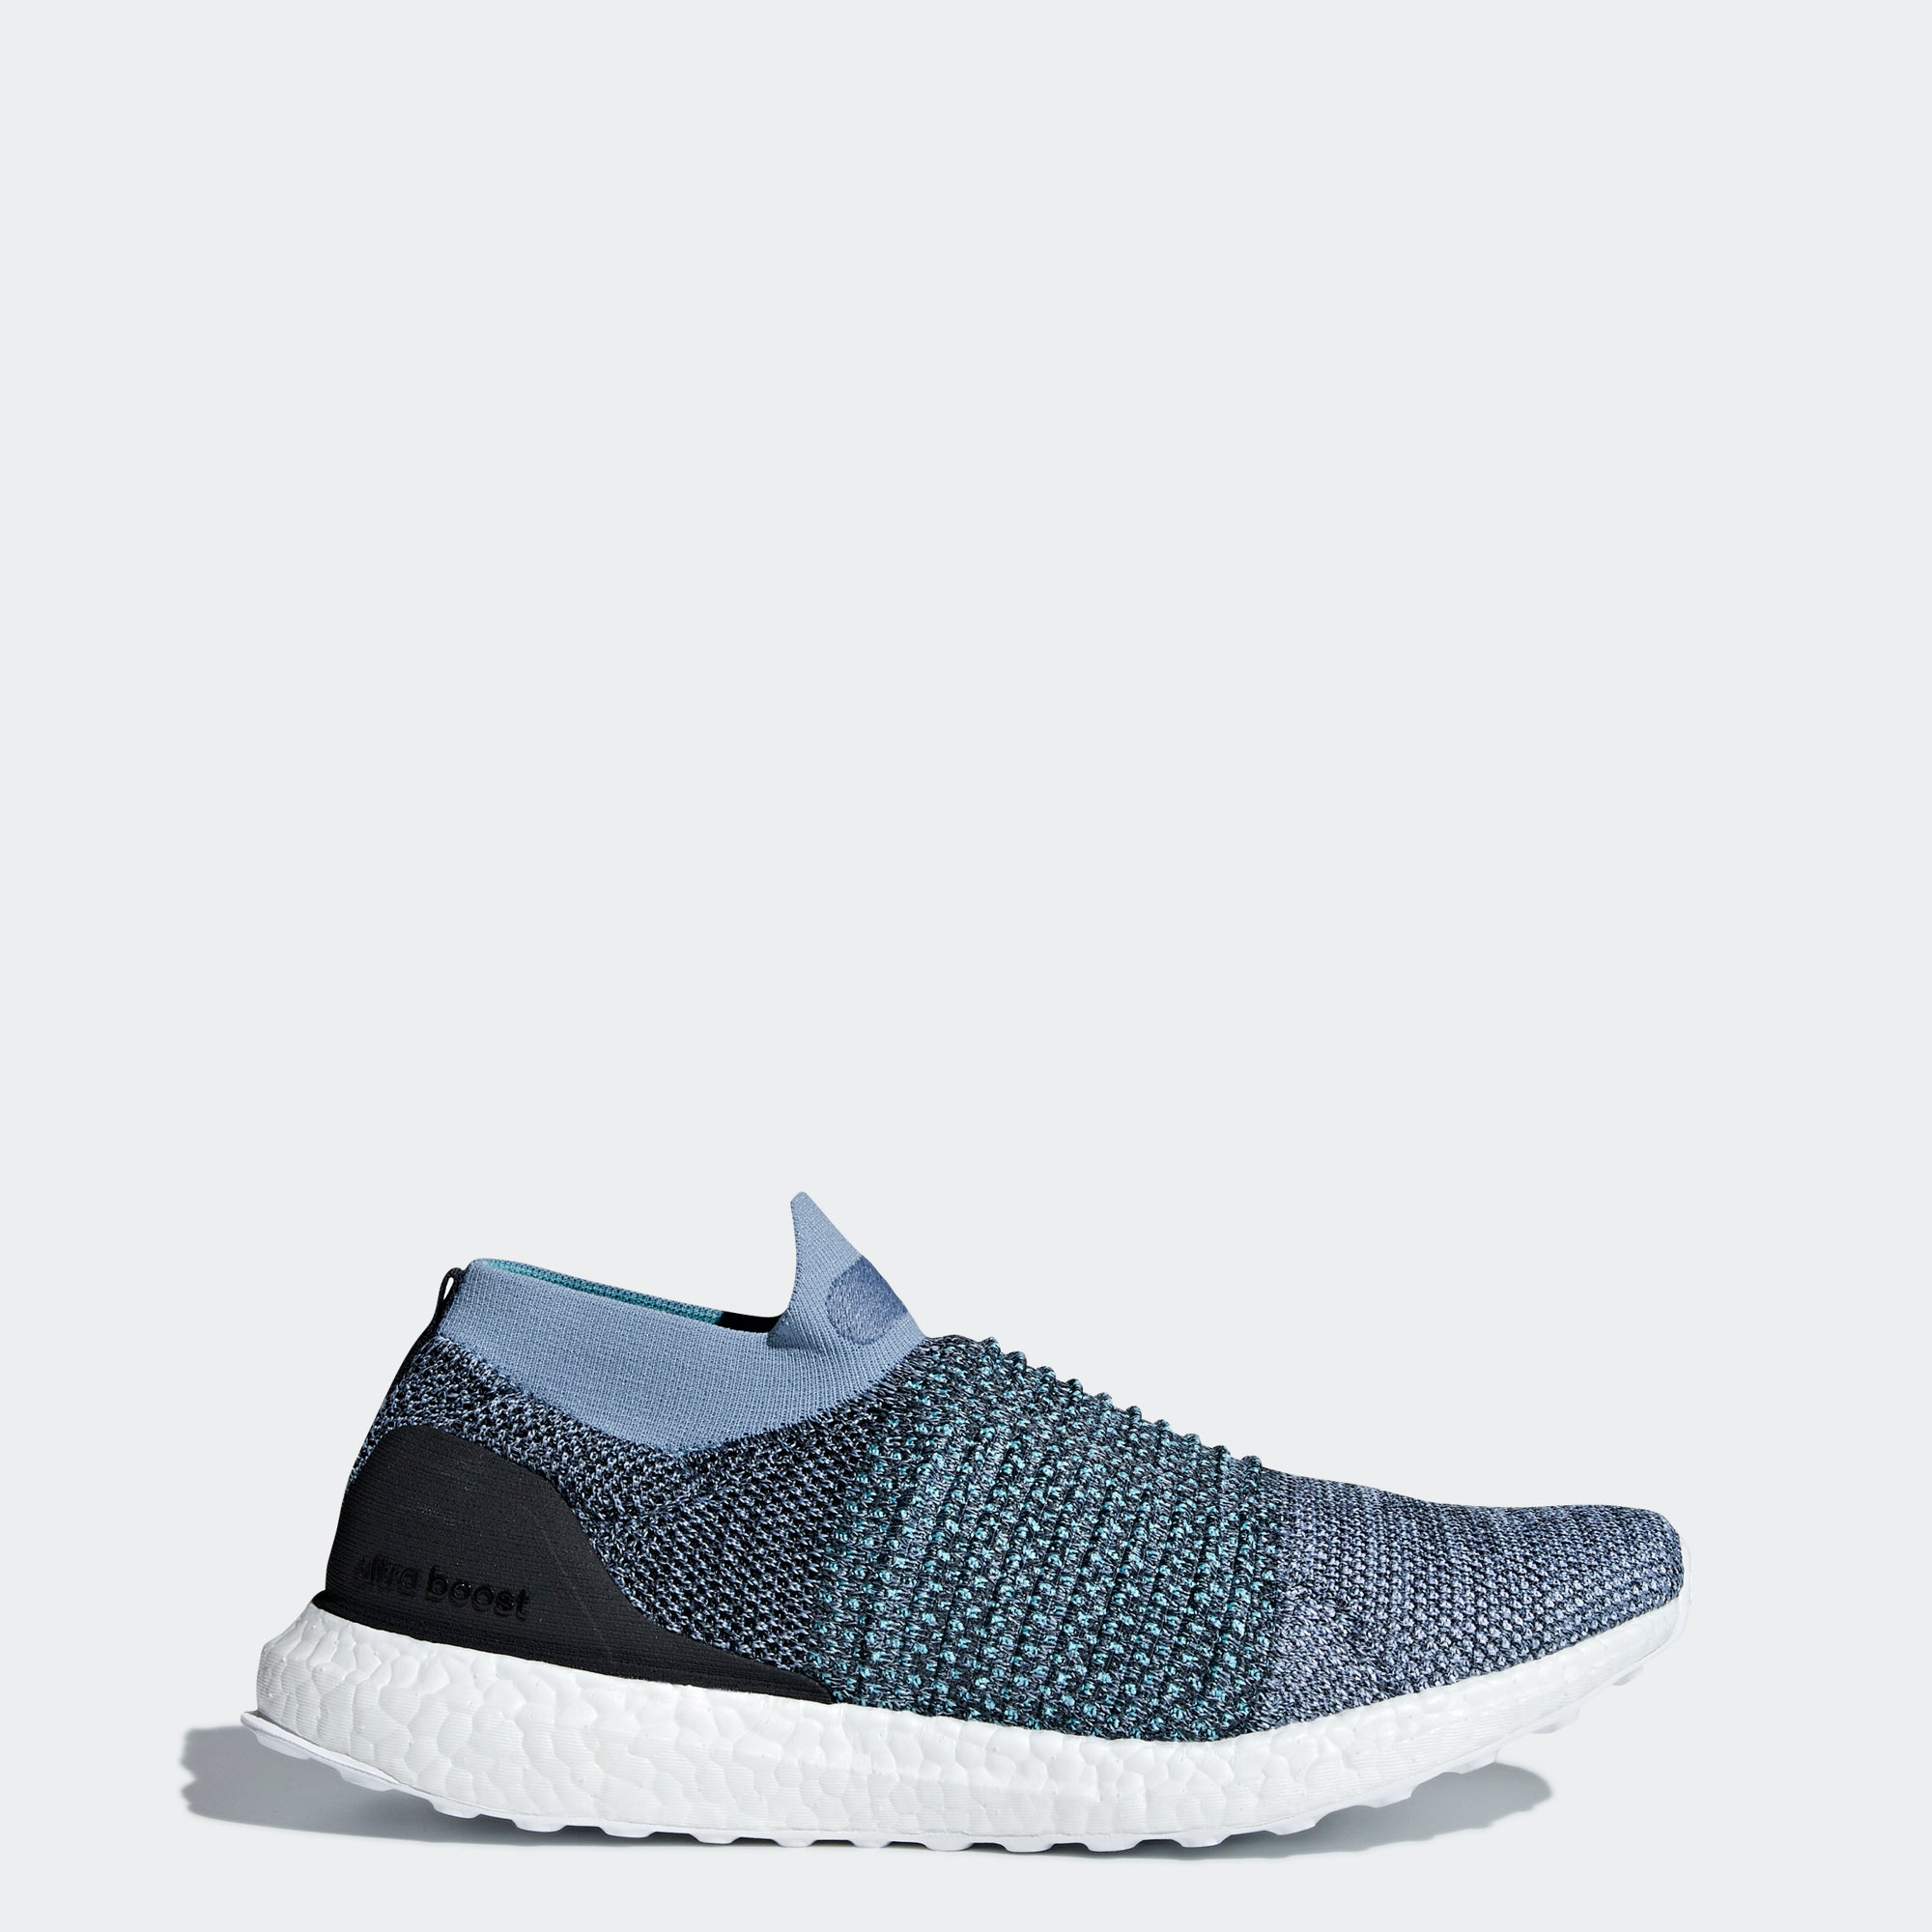 0335dddaef8 Men s adidas Running Ultraboost Laceless Parley Shoes Raw Grey Blue Spirit